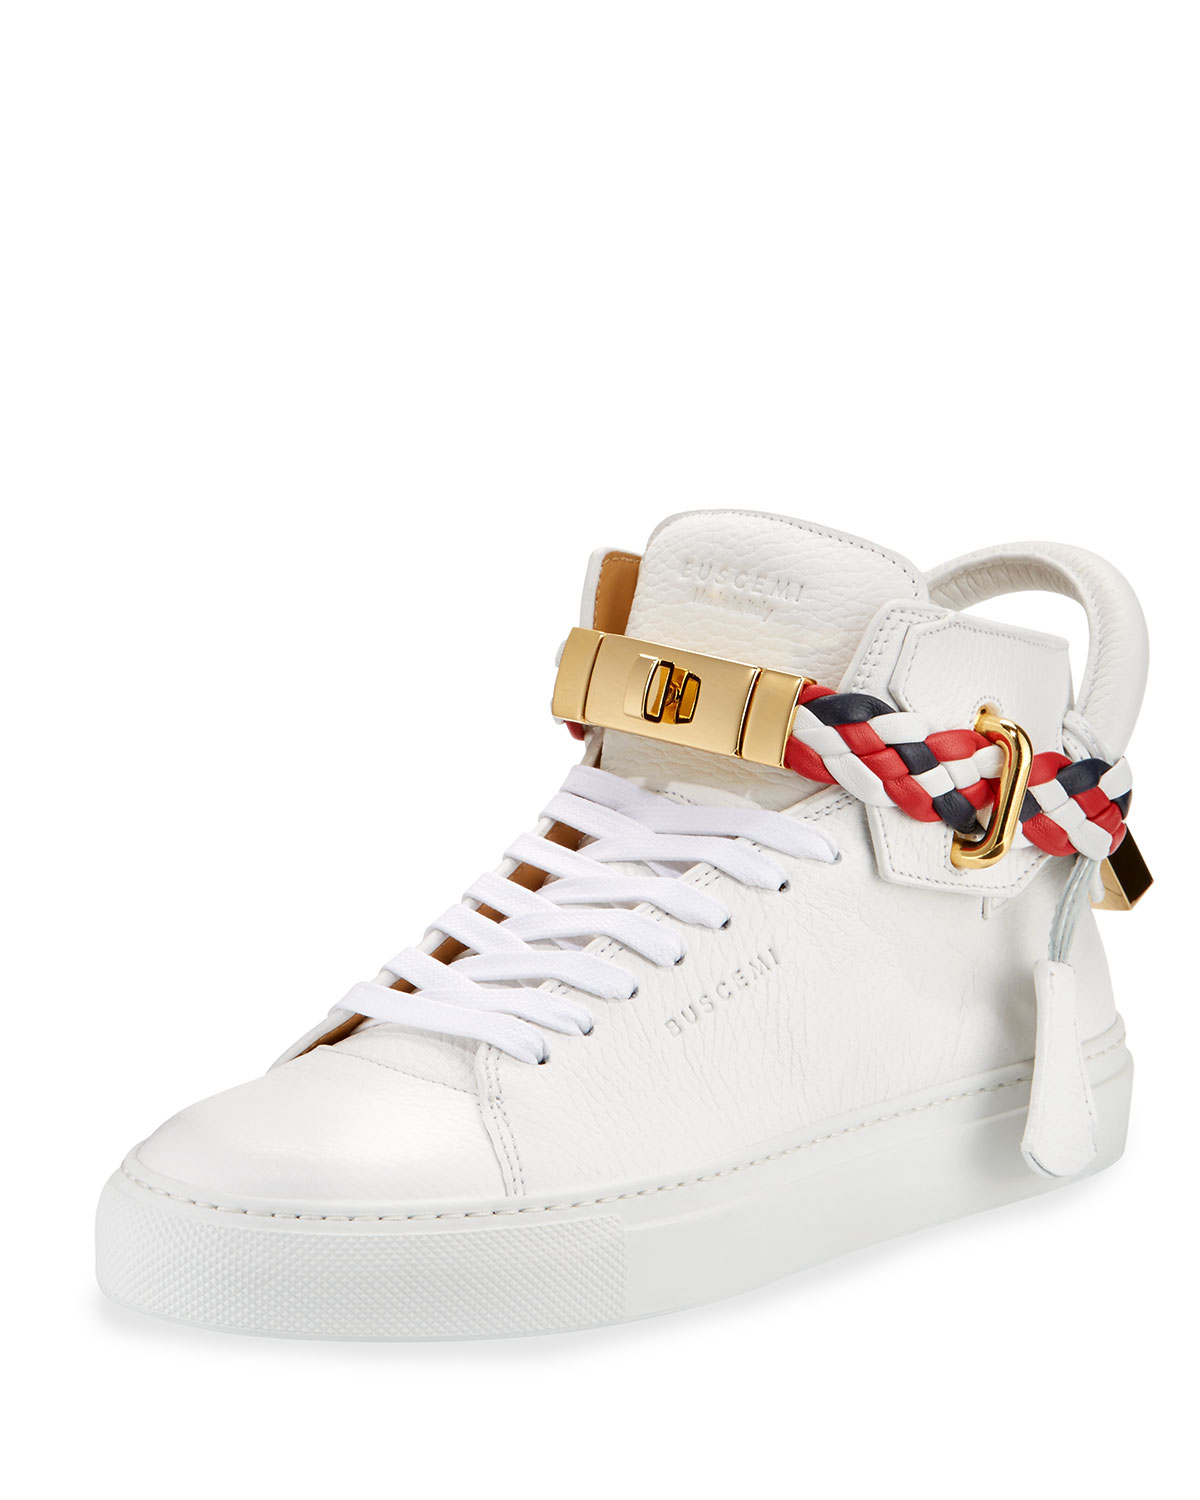 BUSCEMI Women's Ankle Strap High Top Sneaker